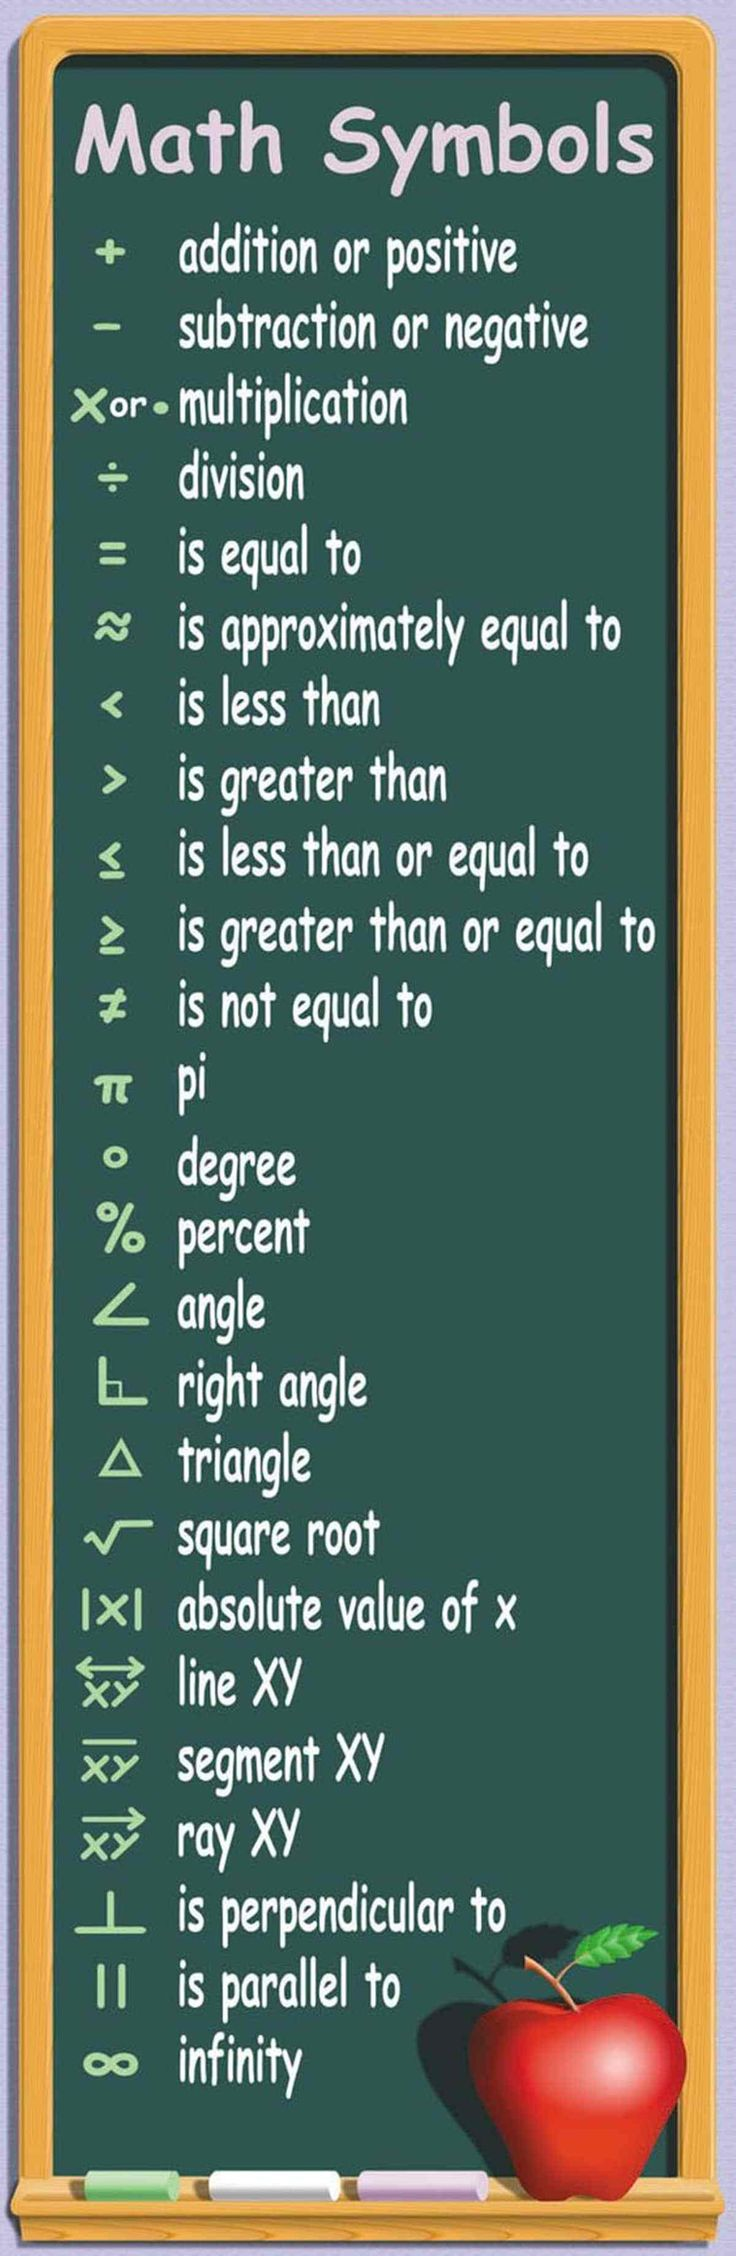 Mathematics is used to communicate information about a wide range of different subjects...